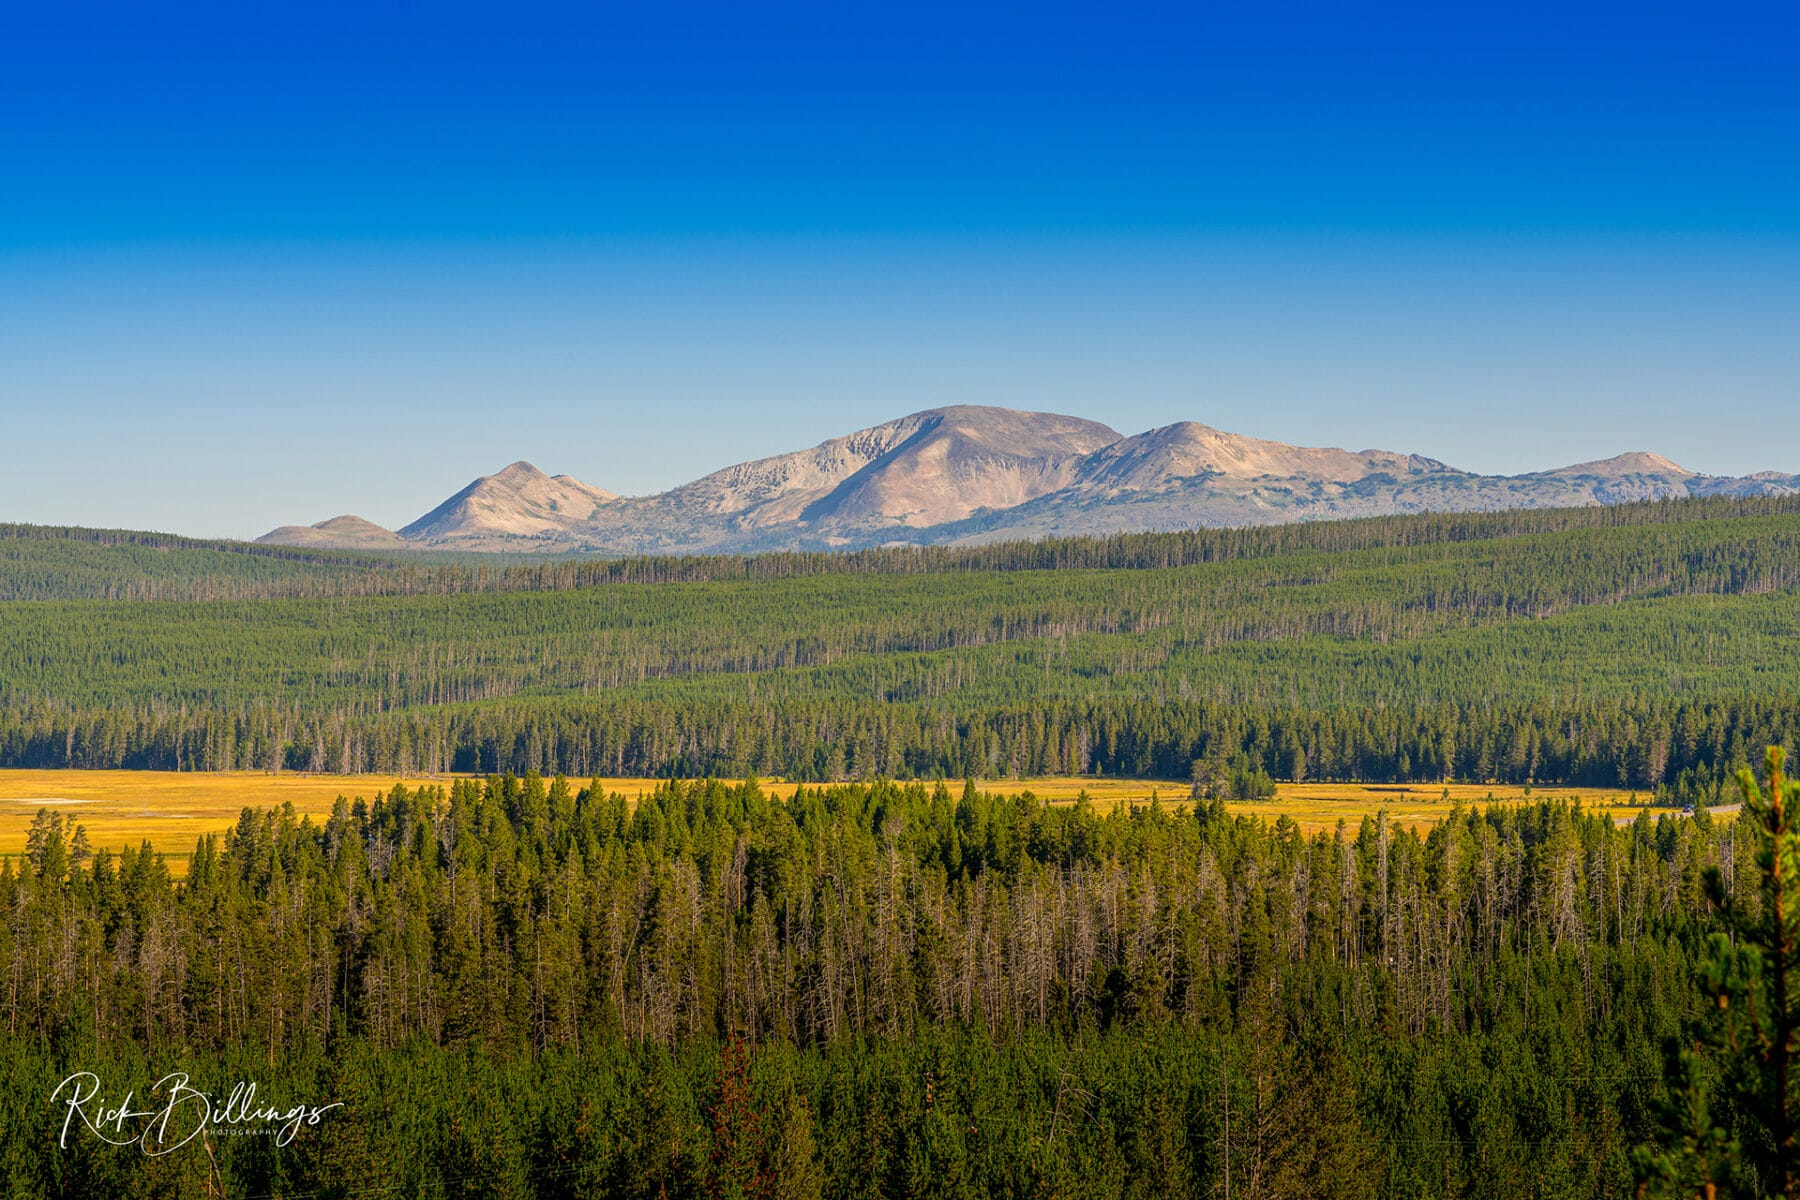 No 1081 20190821 Yellowstone Mountain Range